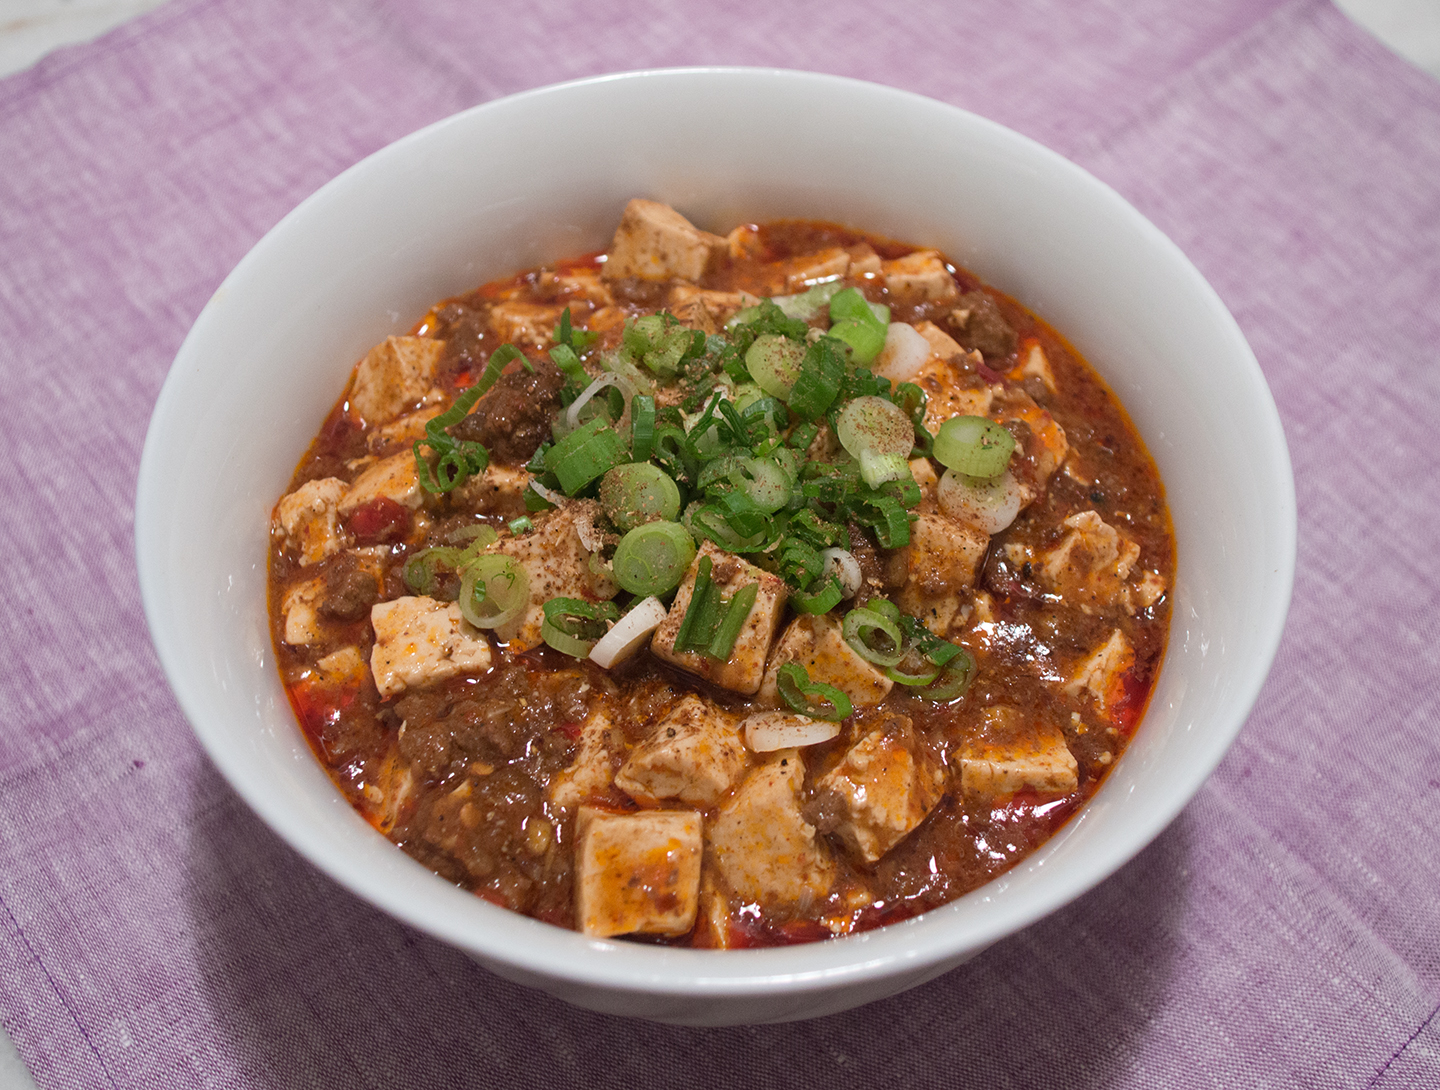 Mapo Tofu (麻婆豆腐) - Bean Curd in Spicy Sichuan Chili Sauce